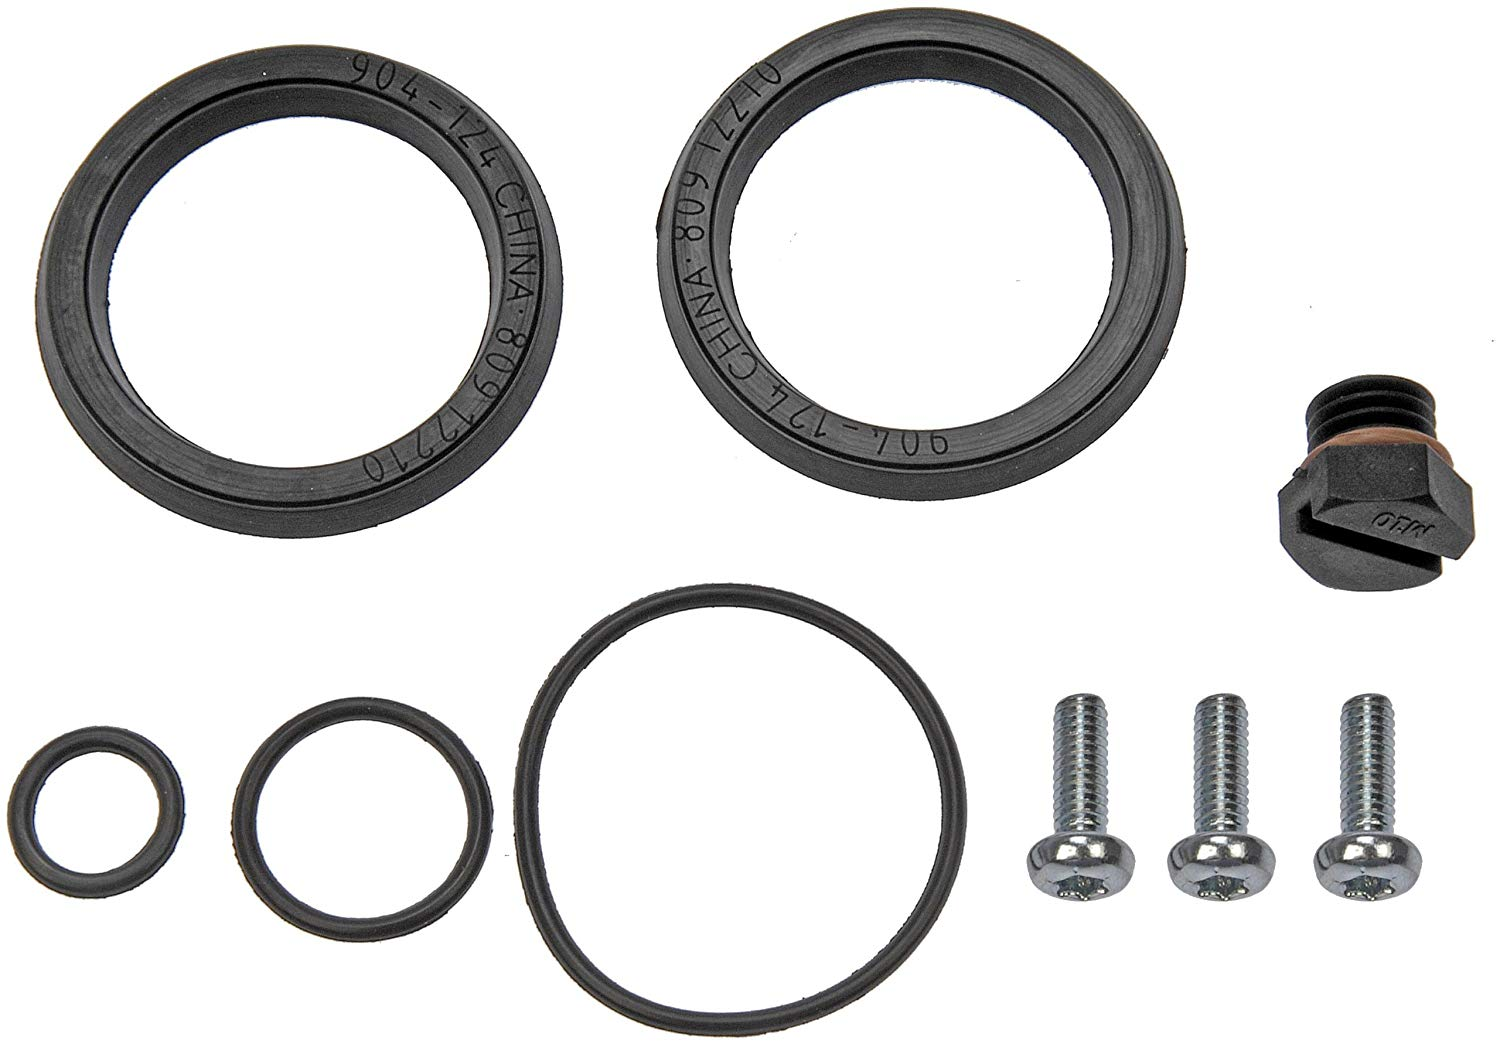 904 124 Primer Fuel Filter Seal Kit Replace Just The